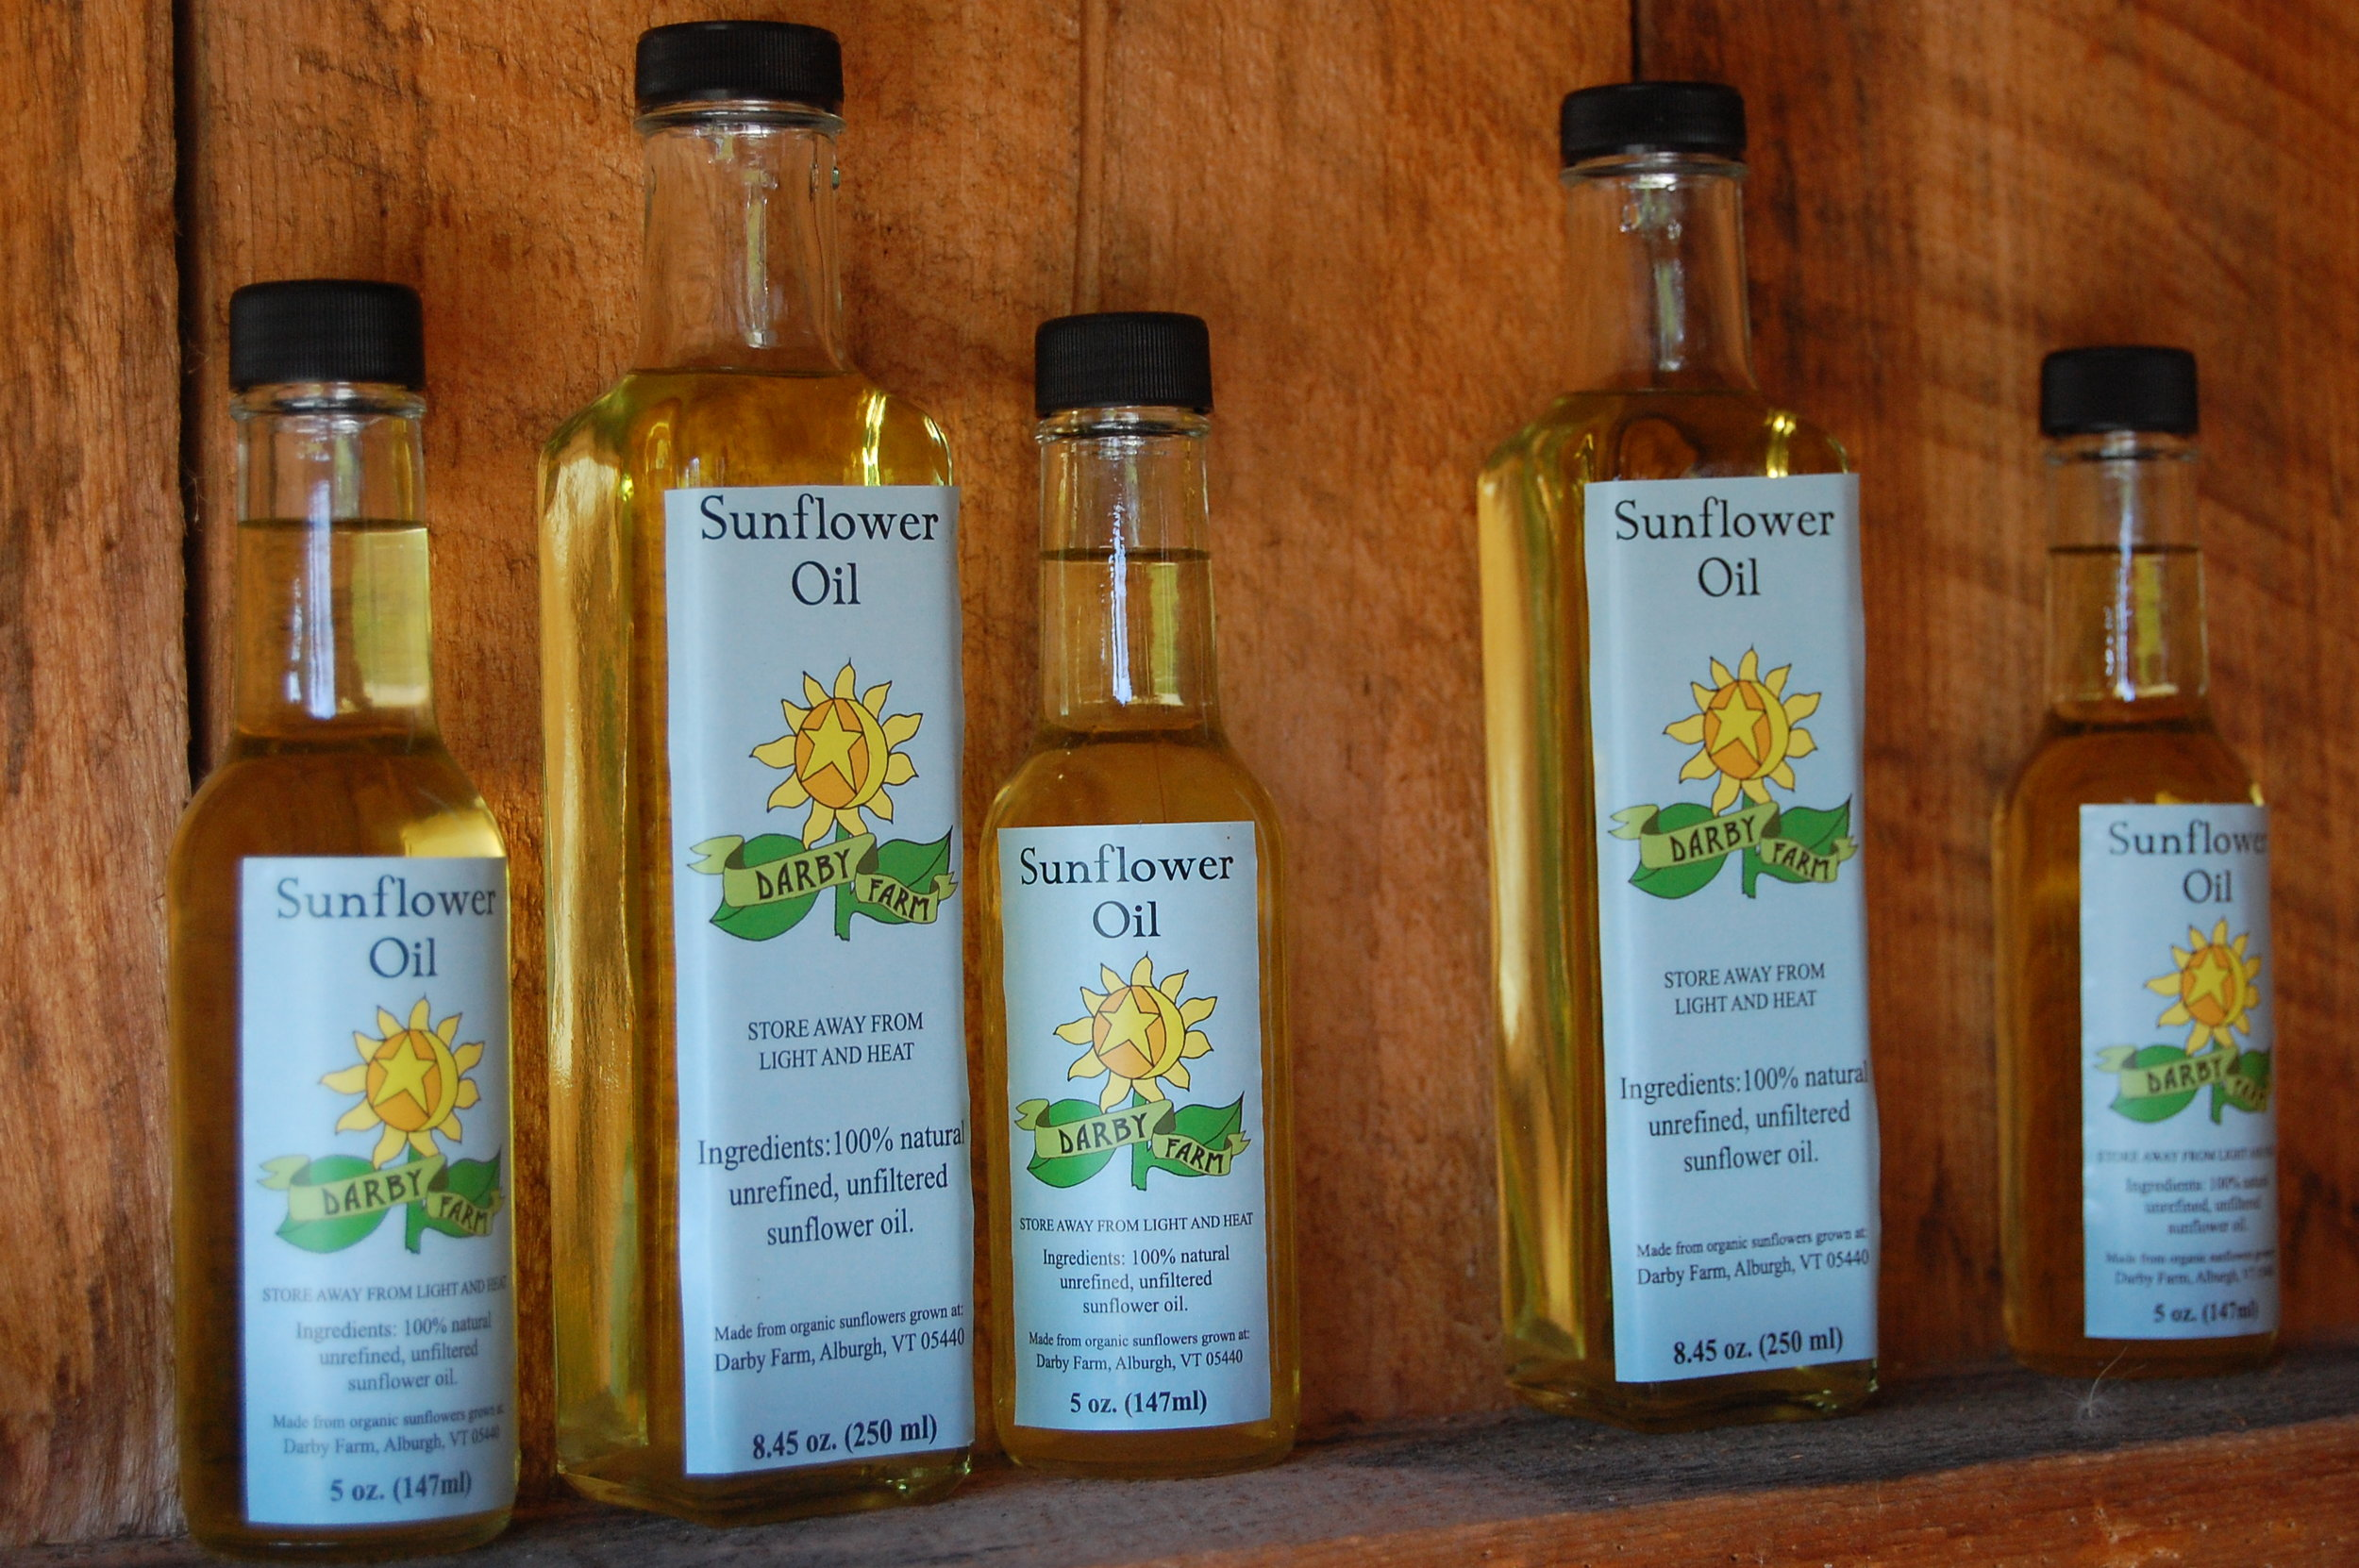 Sunflower oil produced from the sunflowers grown at Darby Farm